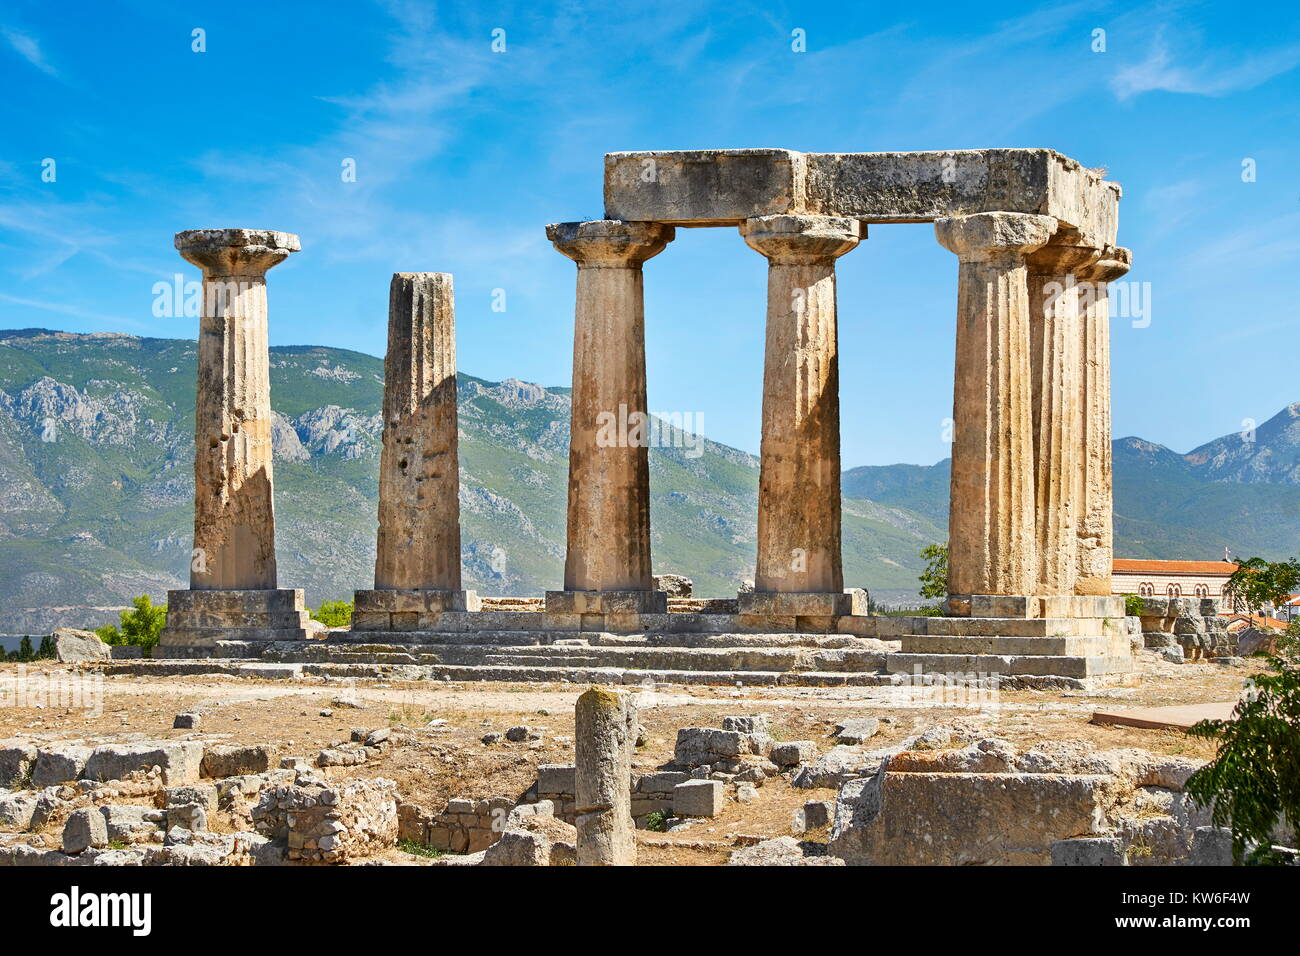 The Temple of Apollo, ancient Corinth, Greece - Stock Image